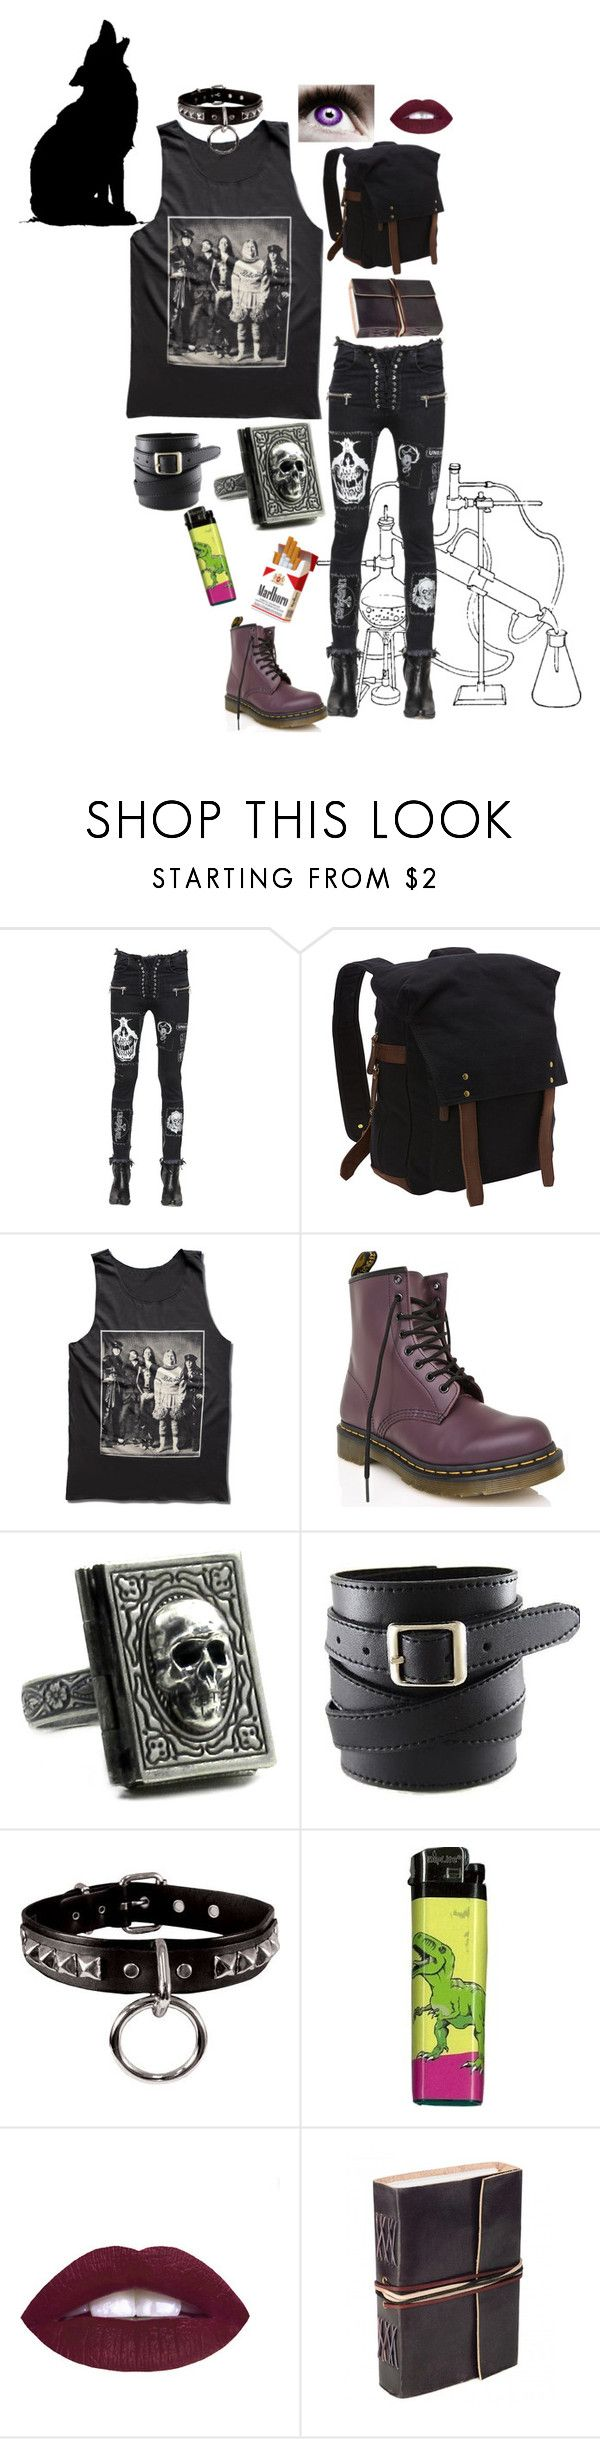 """Smells Like The Only Nirvana Song You Know"" by x-shadow-phoenix-x ❤ liked on Polyvore featuring Unravel, Vagabond Traveler, Dr. Martens and L.A. Girl"